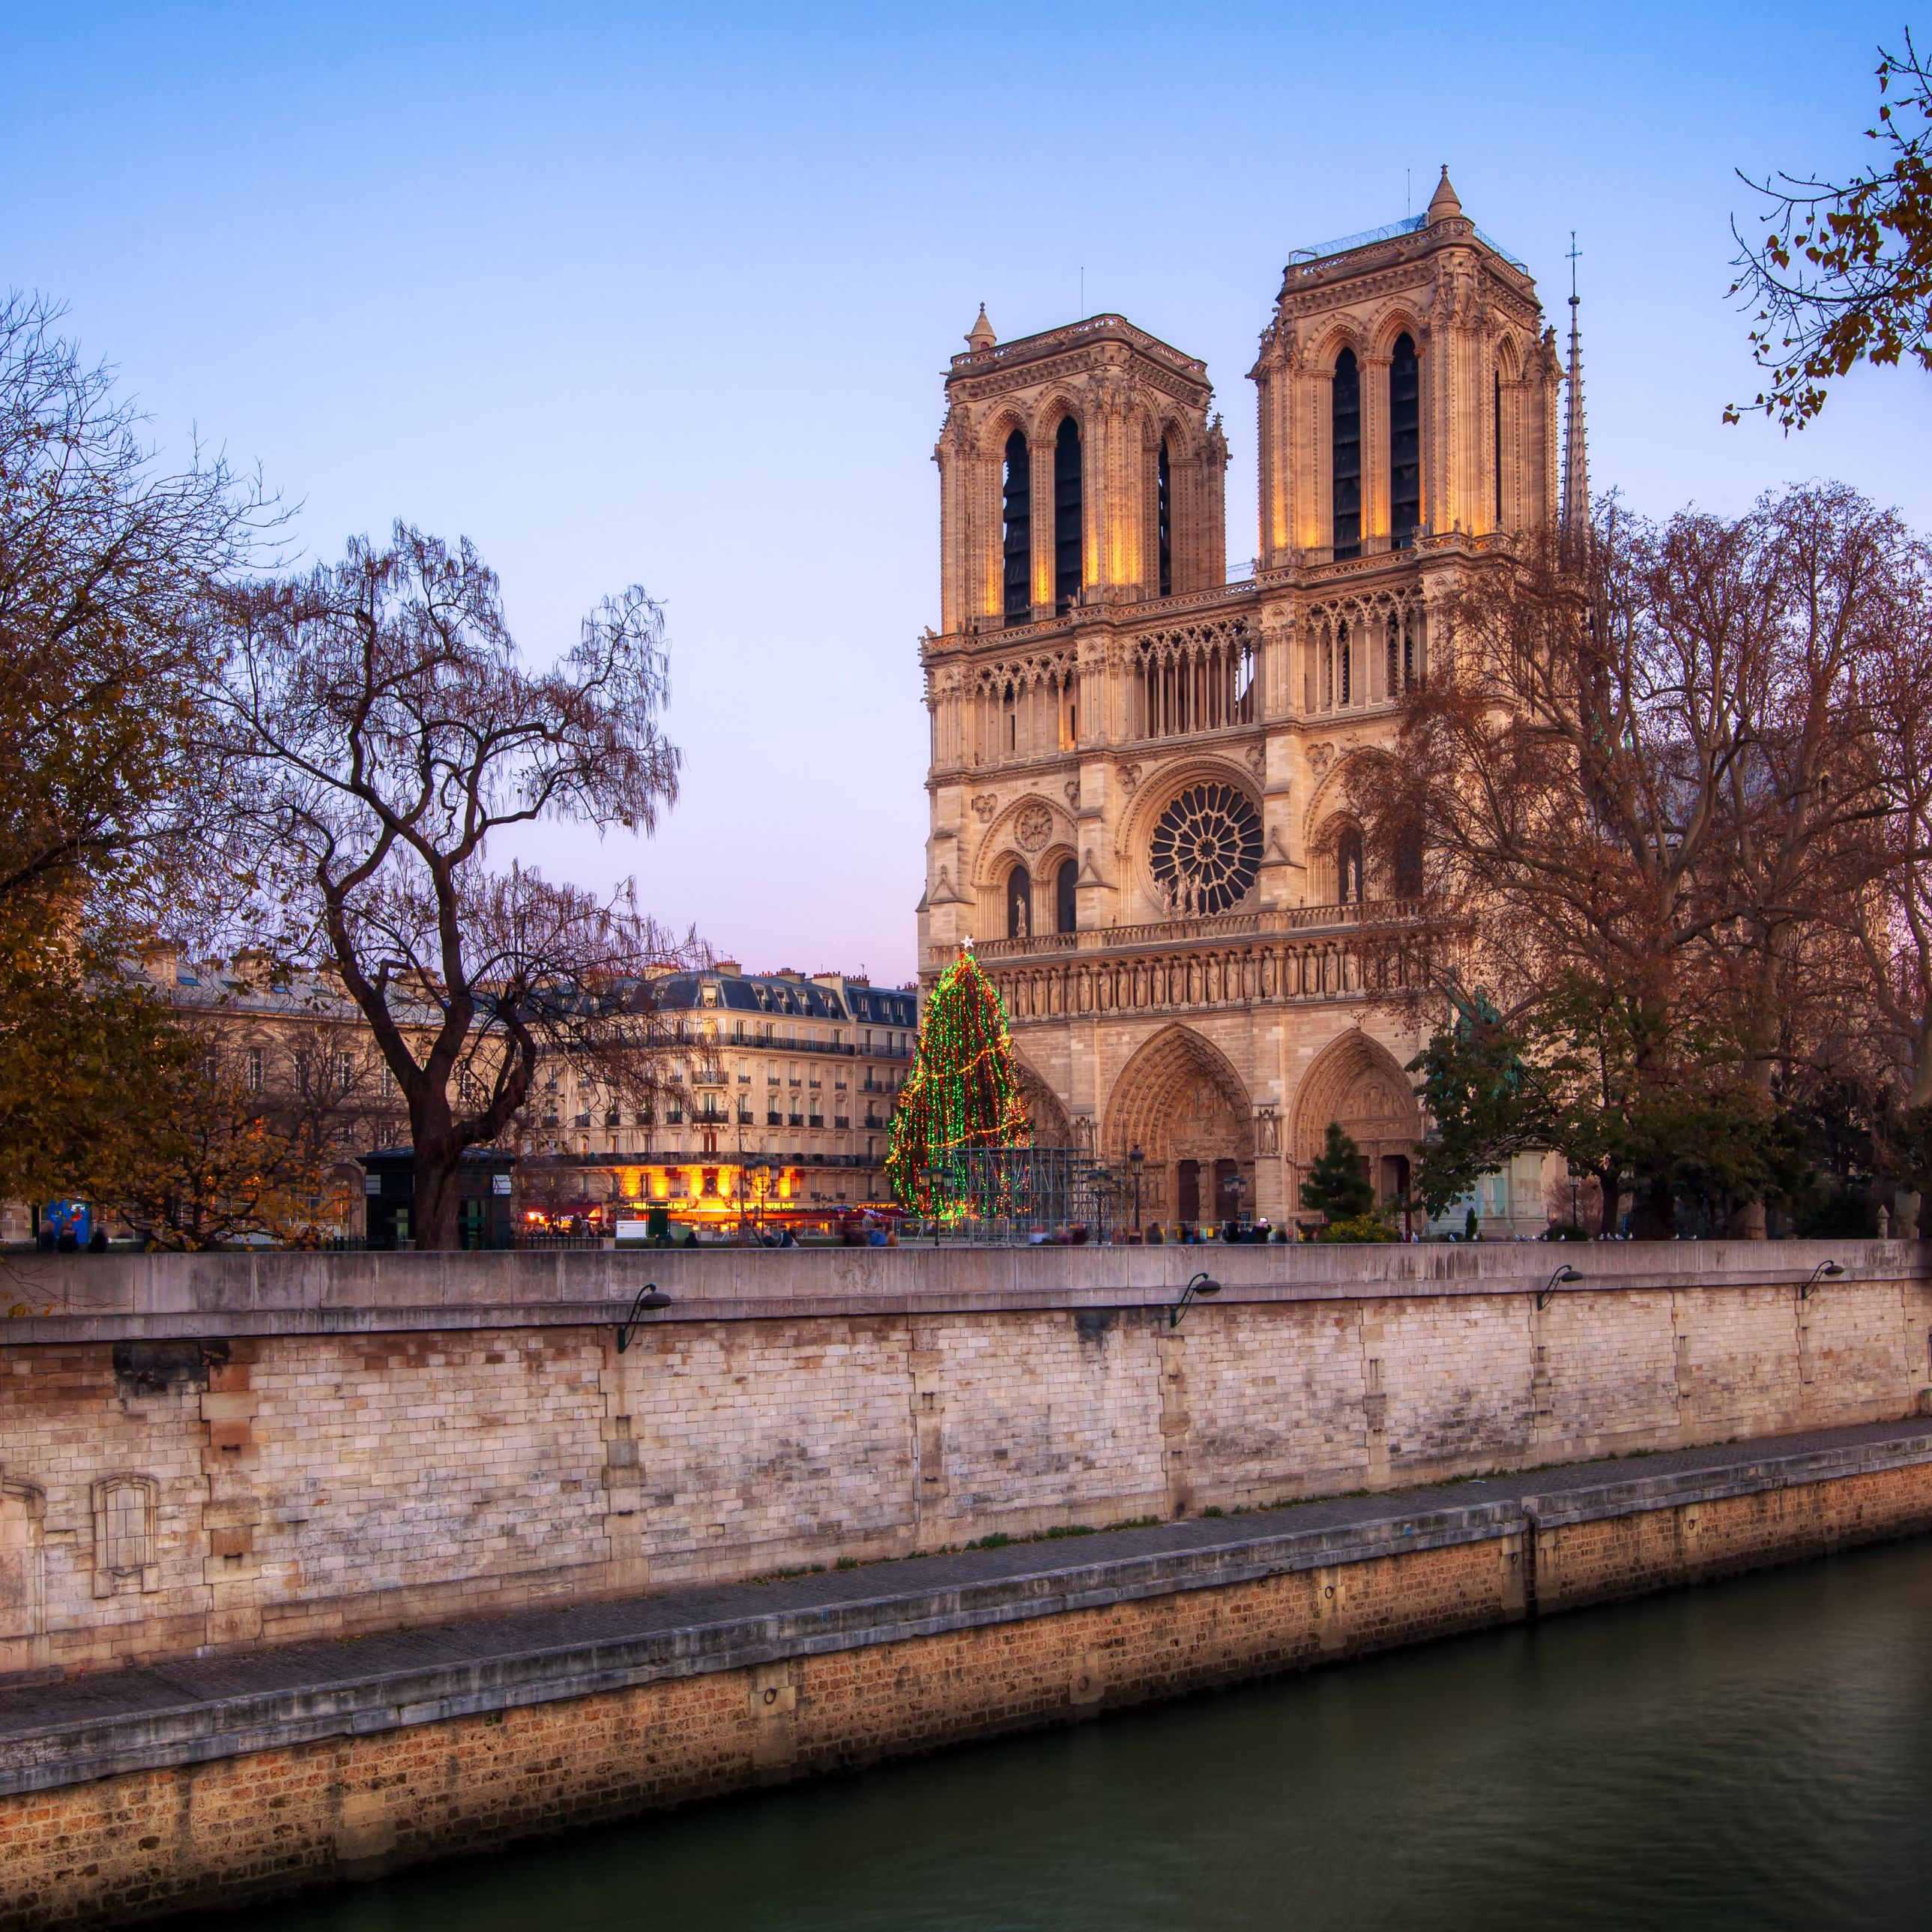 The 10 Most Beautiful Churches and Cathedrals in Paris